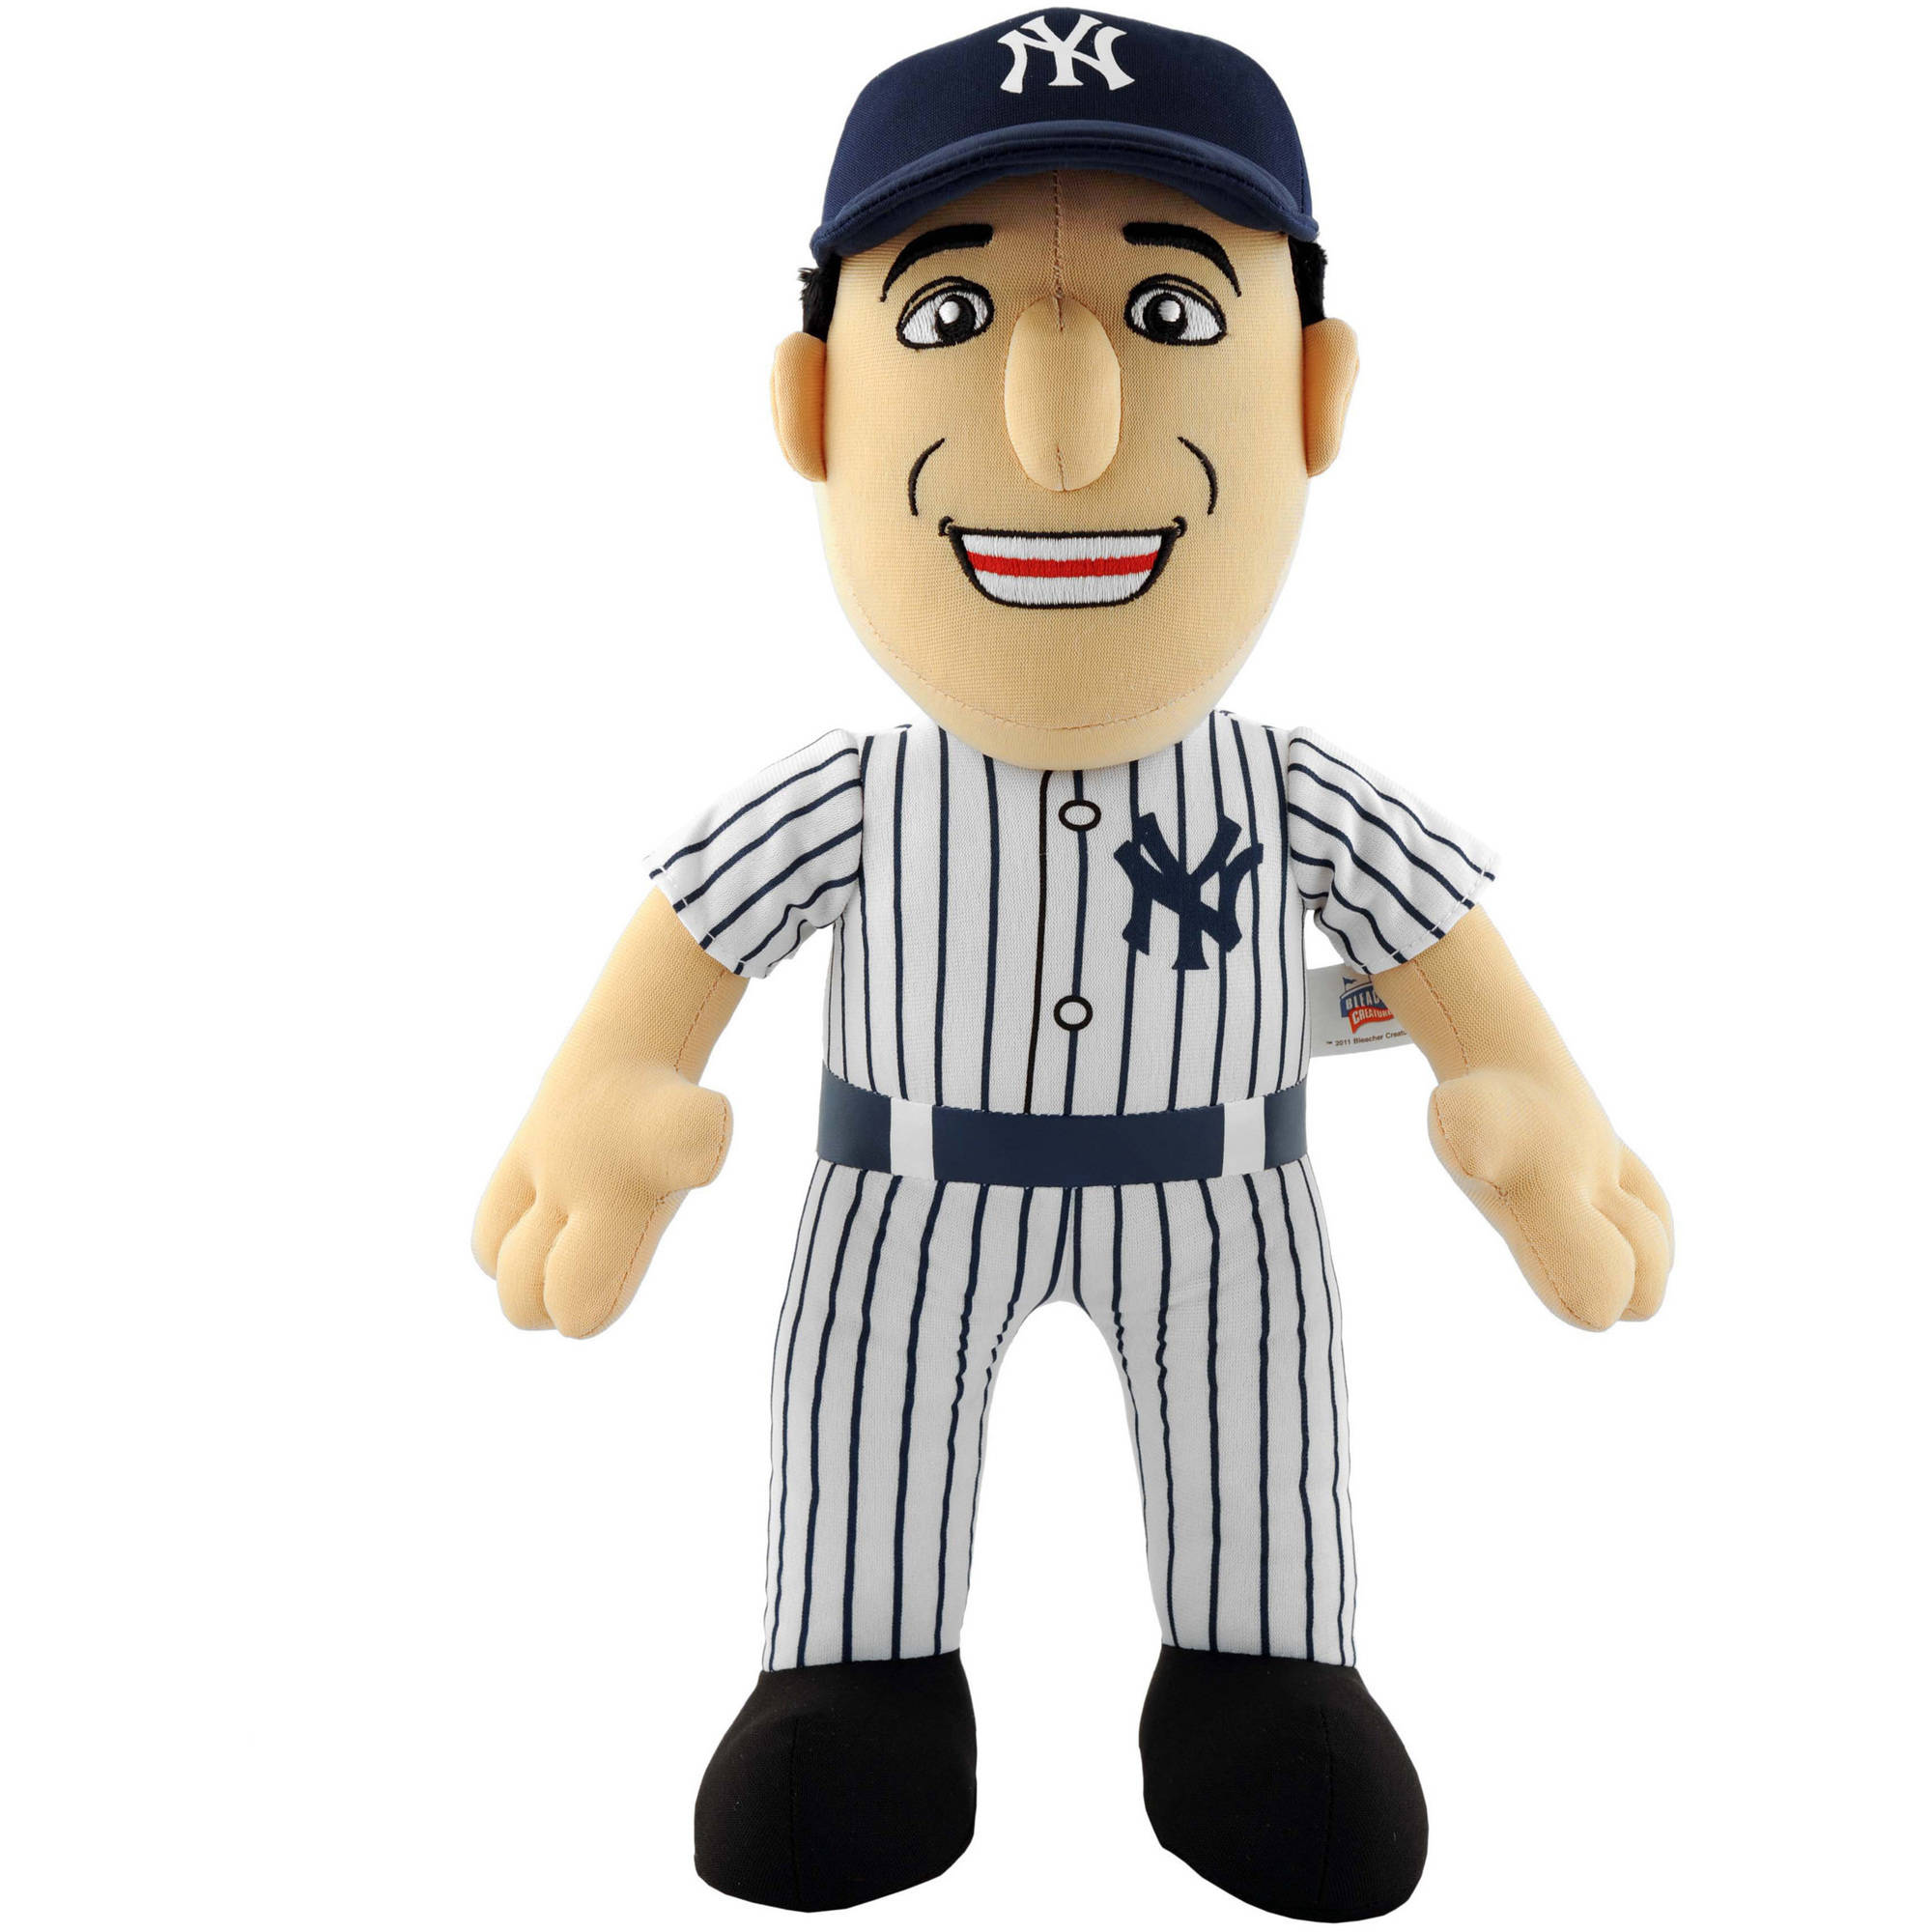 "Bleacher Creatures MLB 14"" Plush Doll, Mark Teixeira, New York Yankees"